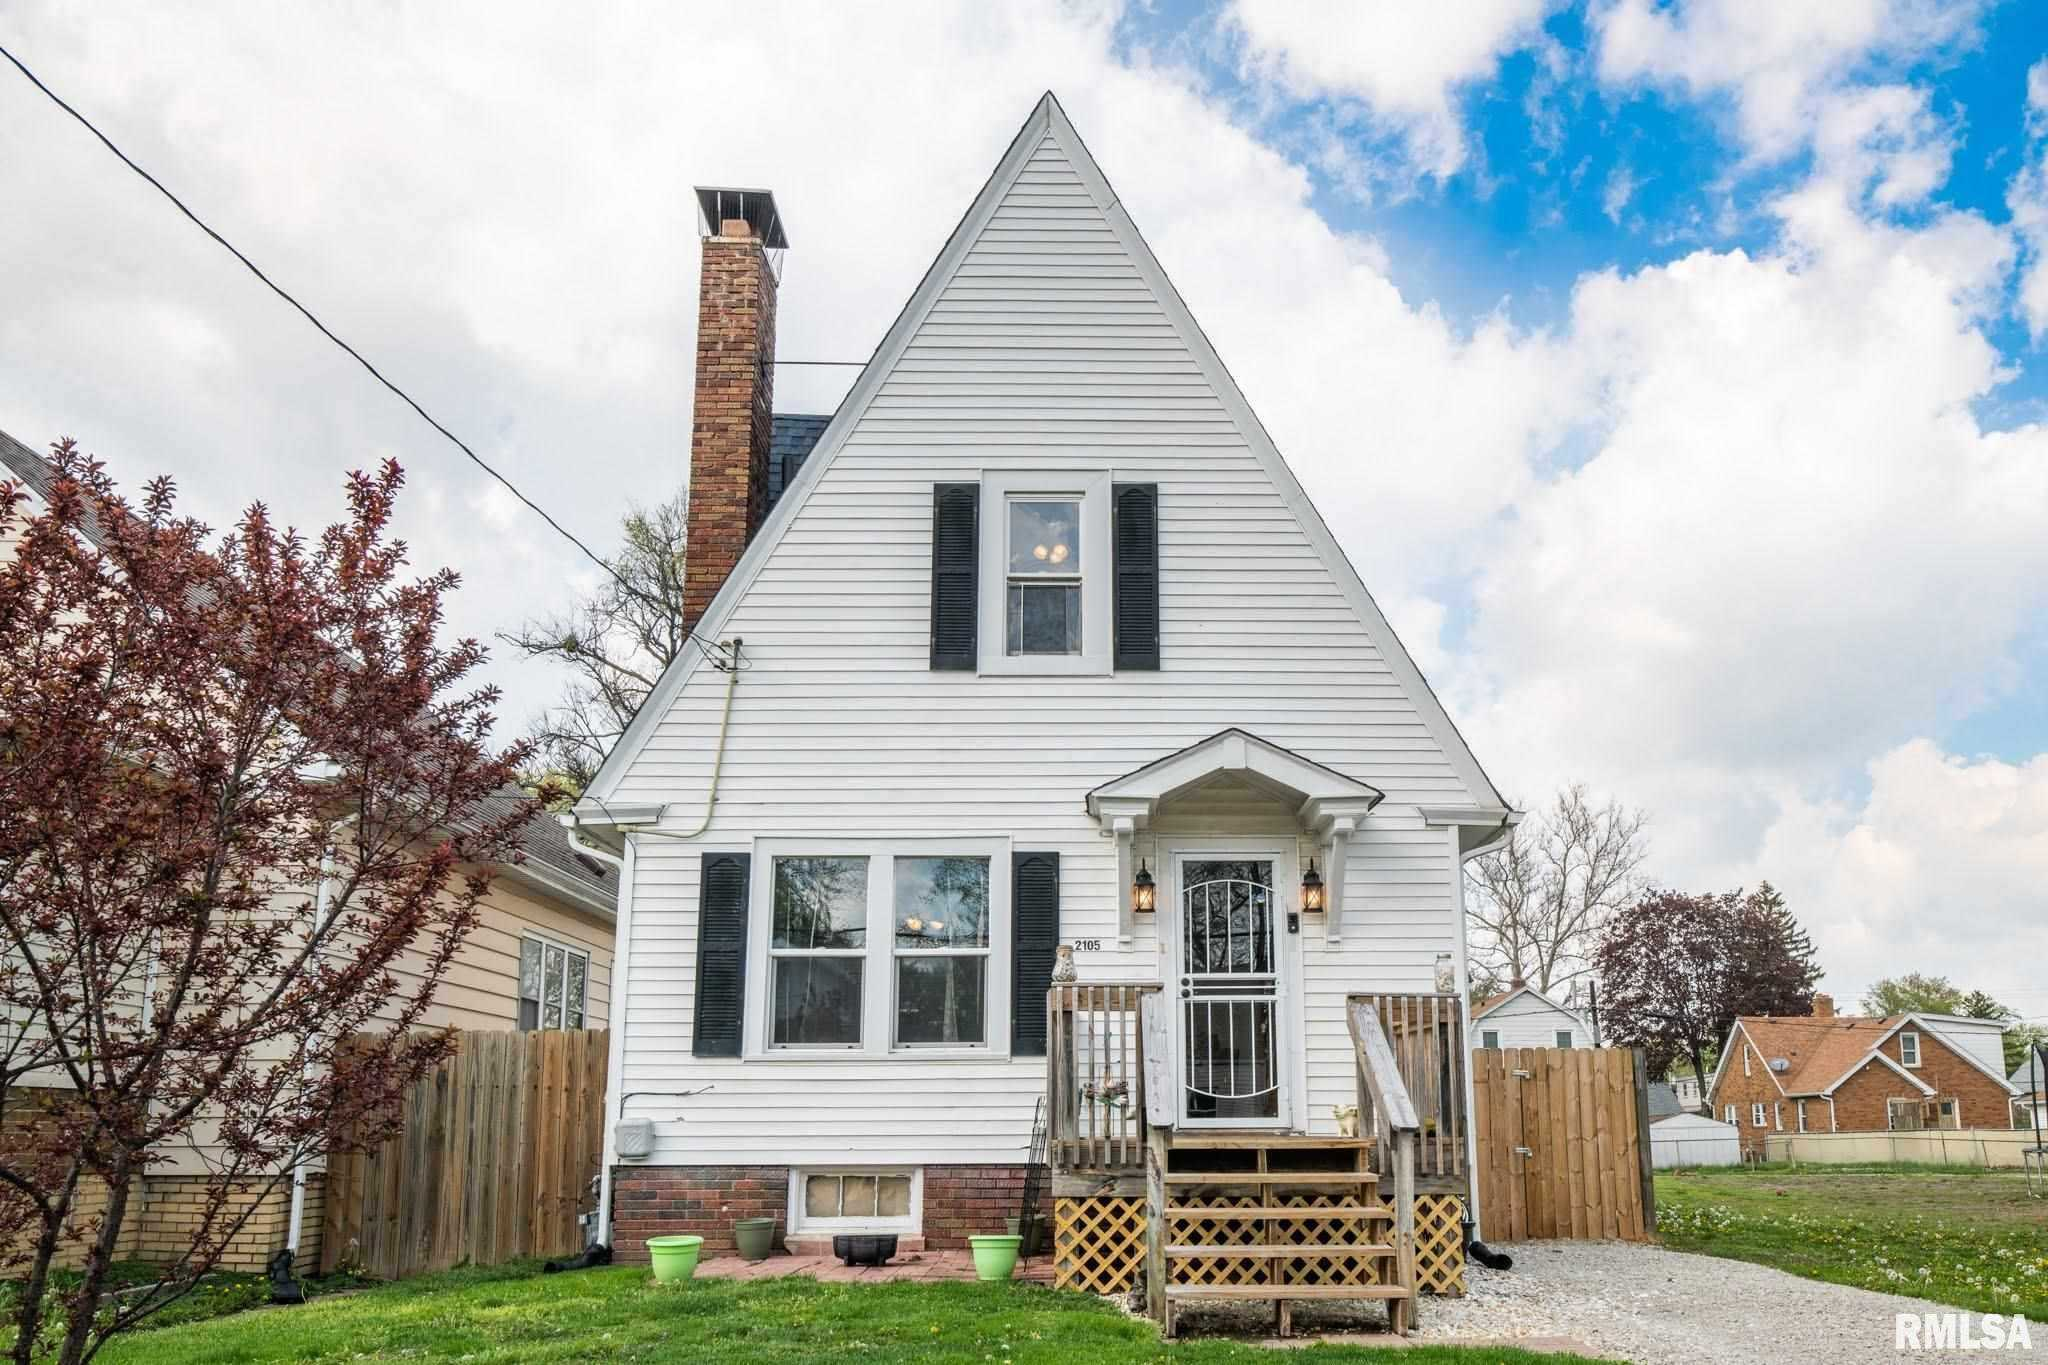 $64,900 - 2Br/1Ba -  for Sale in West End, West Peoria